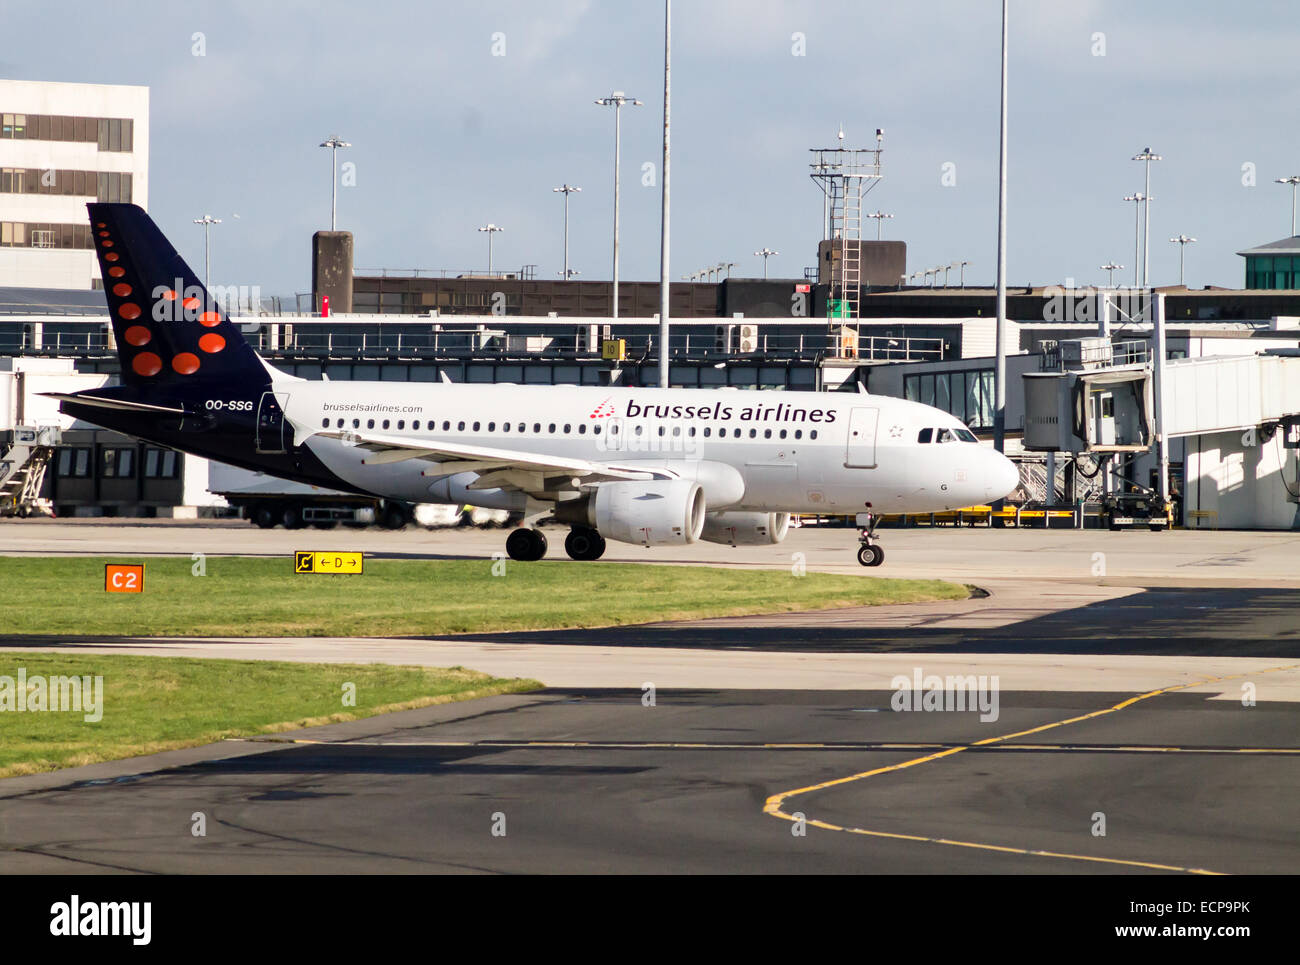 Airlines Departure Manchester Stock Photos & Airlines